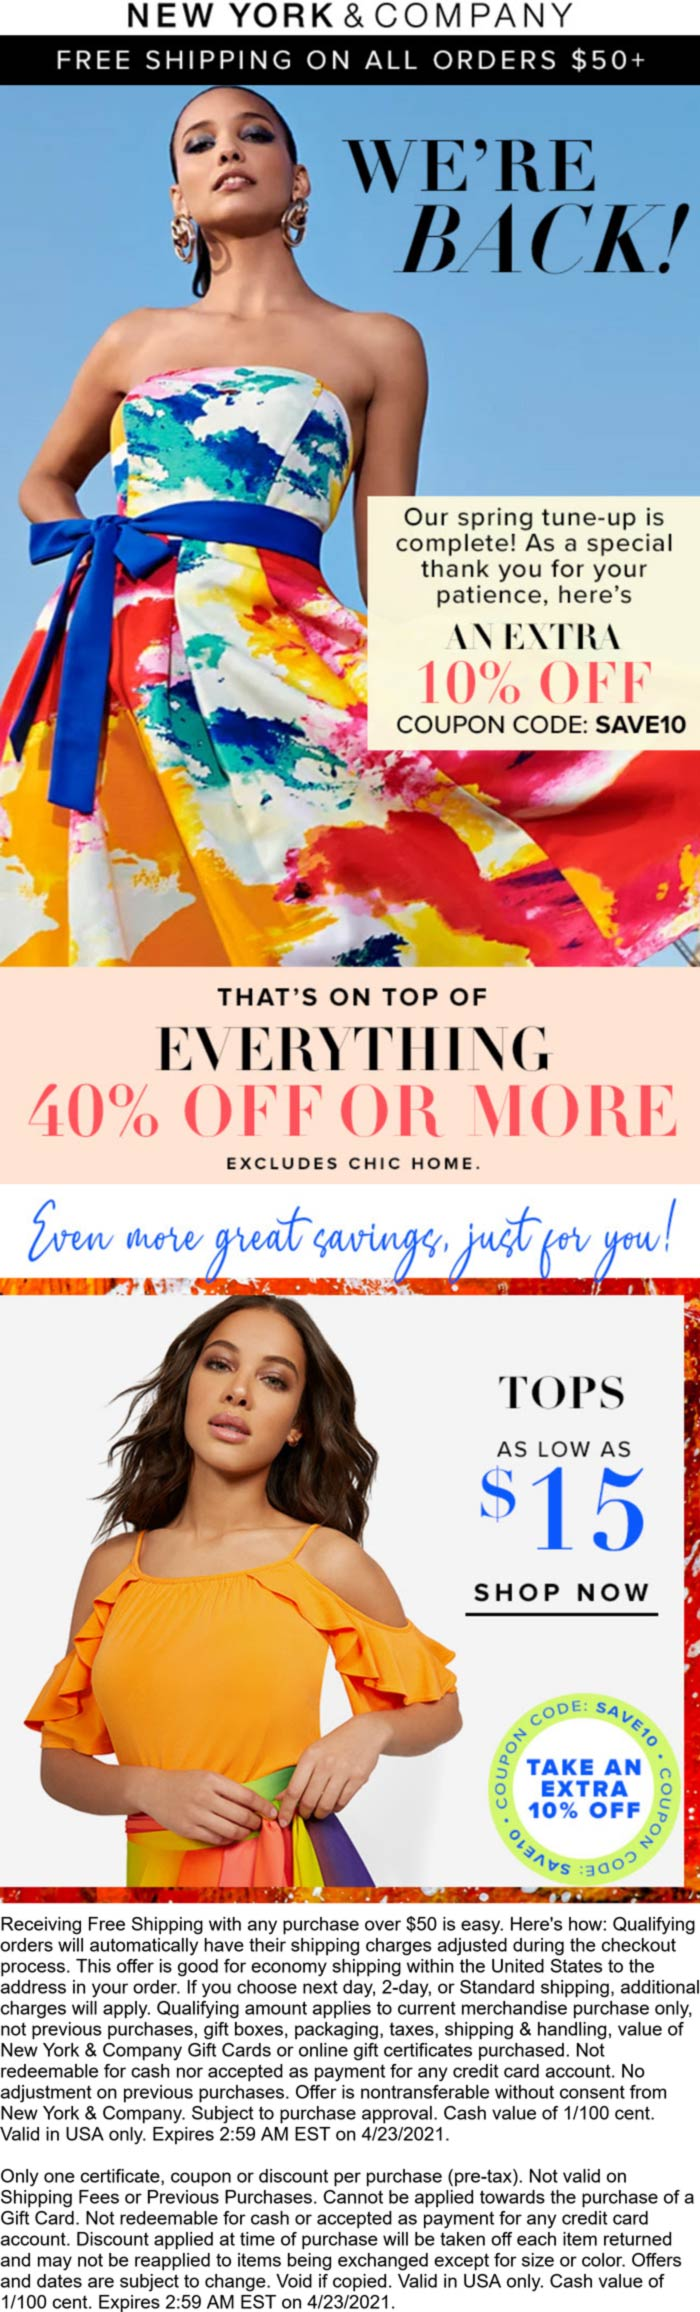 New York & Company stores Coupon  50% off everything today at New York & Company via promo code SAVE10 #newyorkcompany